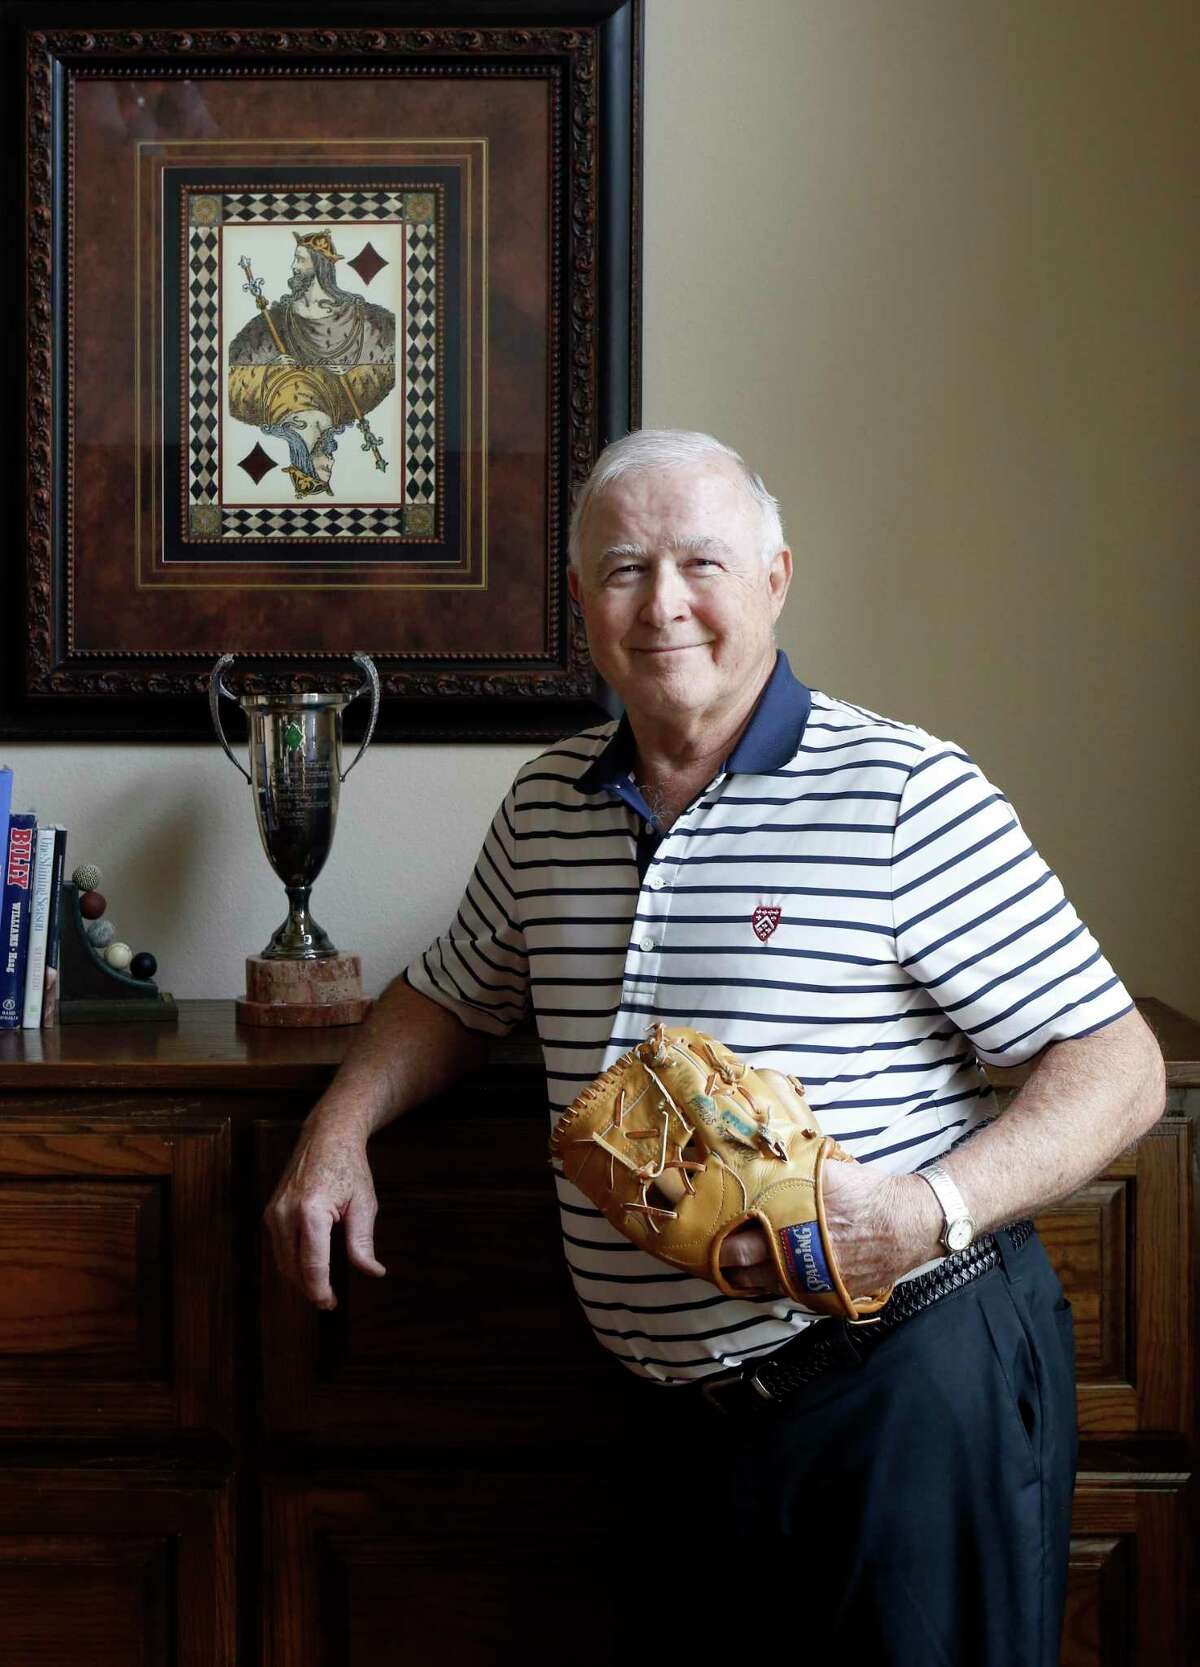 """Former Major League Baseball player Billy Grabarkewitz, with a baseball glove he played with and a trophy for """"the player that most exemplifies Dodgers tradition,"""" at his home in Colleyville, Texas on Friday, June 14, 2019. Grabarkewitz looks back at the 1970 All-Star Game, which amazingly included three players from San Antonio. (photo by Lara Solt )"""